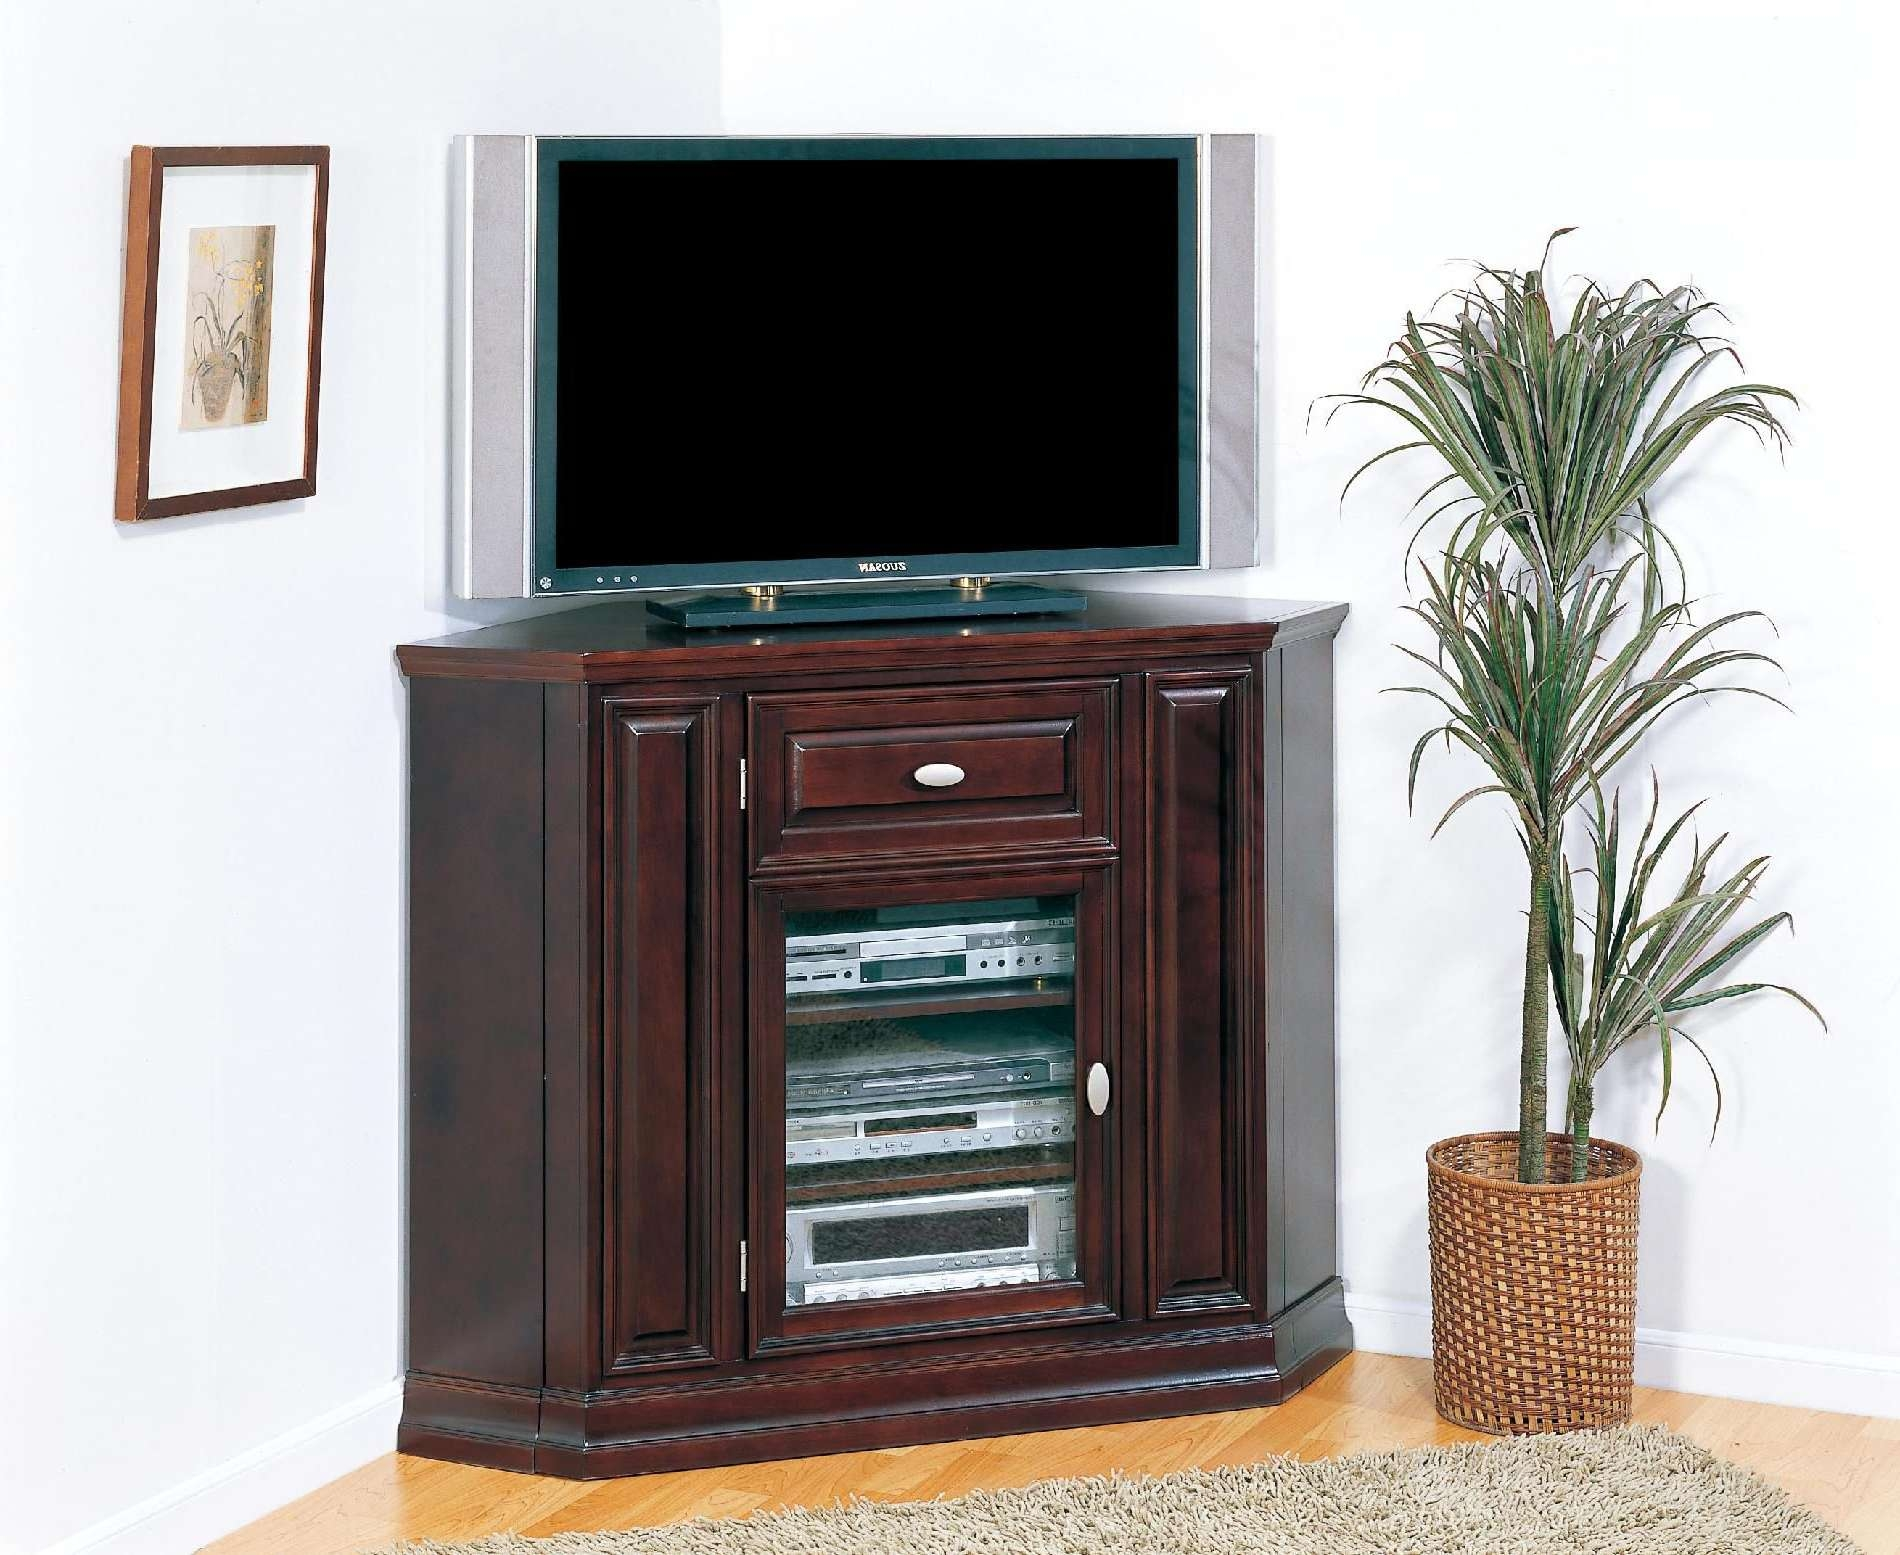 Tall Corner Tv Cabinet With Glass And Wood Doors Plus Drawer Of Within Corner Tv Cabinets With Glass Doors (View 12 of 20)